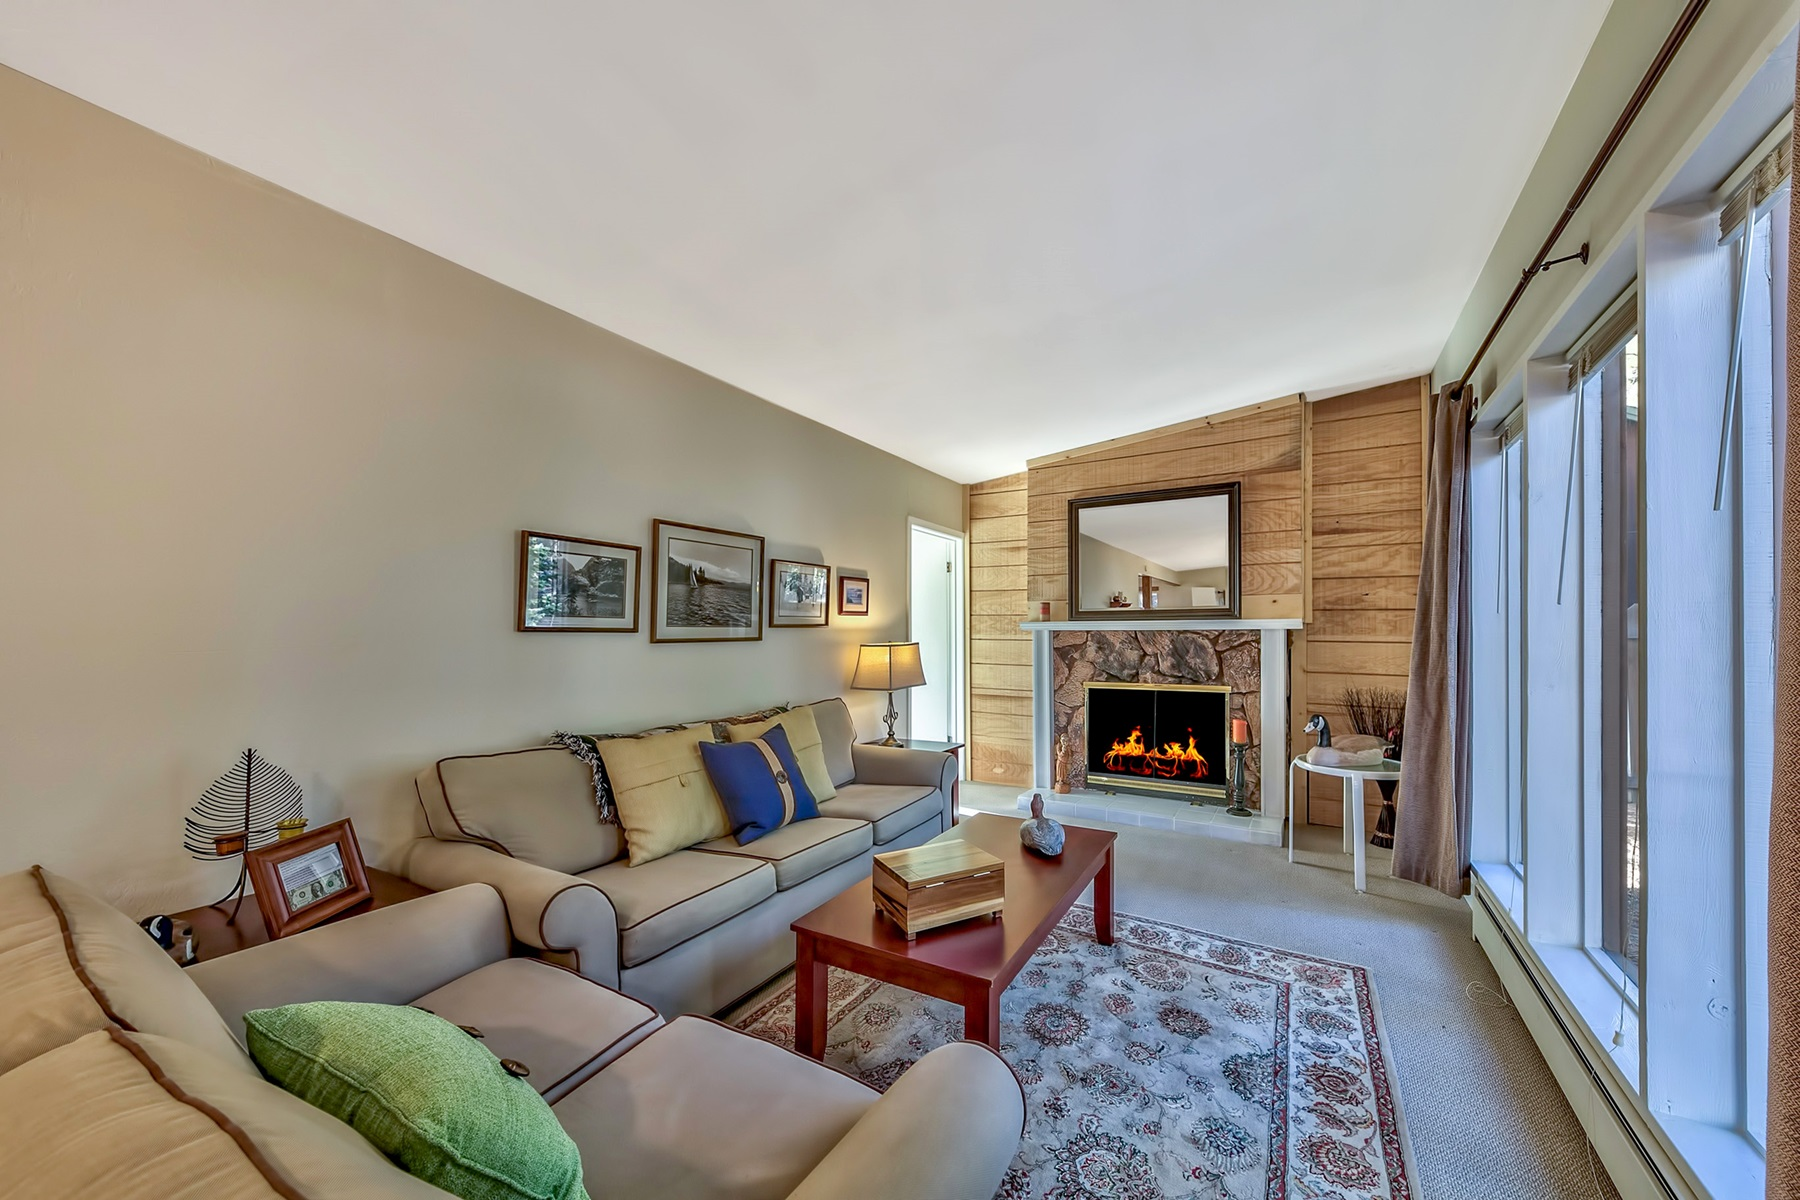 Single Family Homes for Active at 926 Patricia Lane, South Lake Tahoe, CA 96150 926 Patricia Lane South Lake Tahoe, California 96150 United States